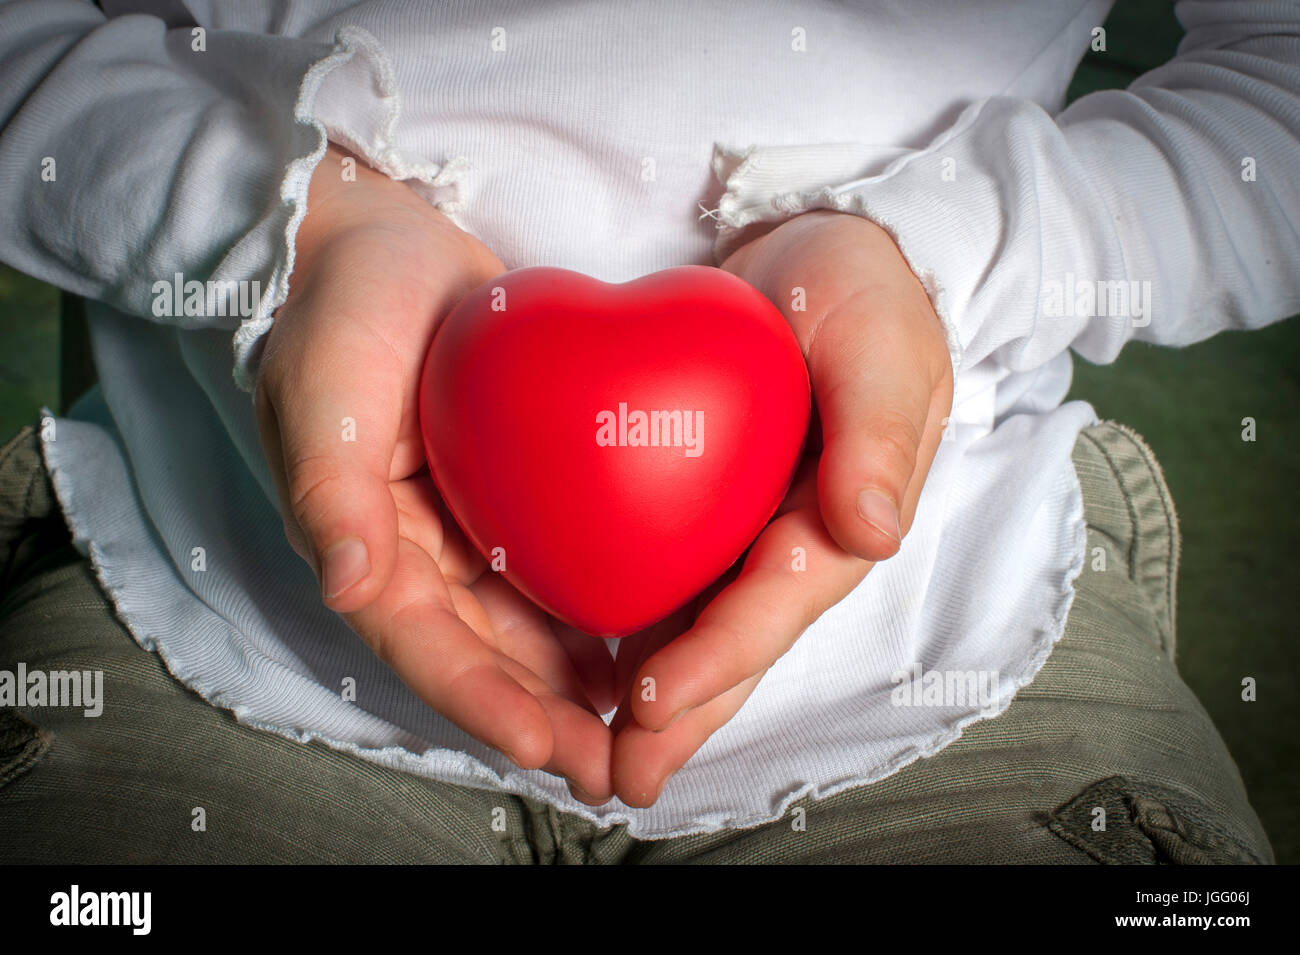 Heart in your hands. - Stock Image